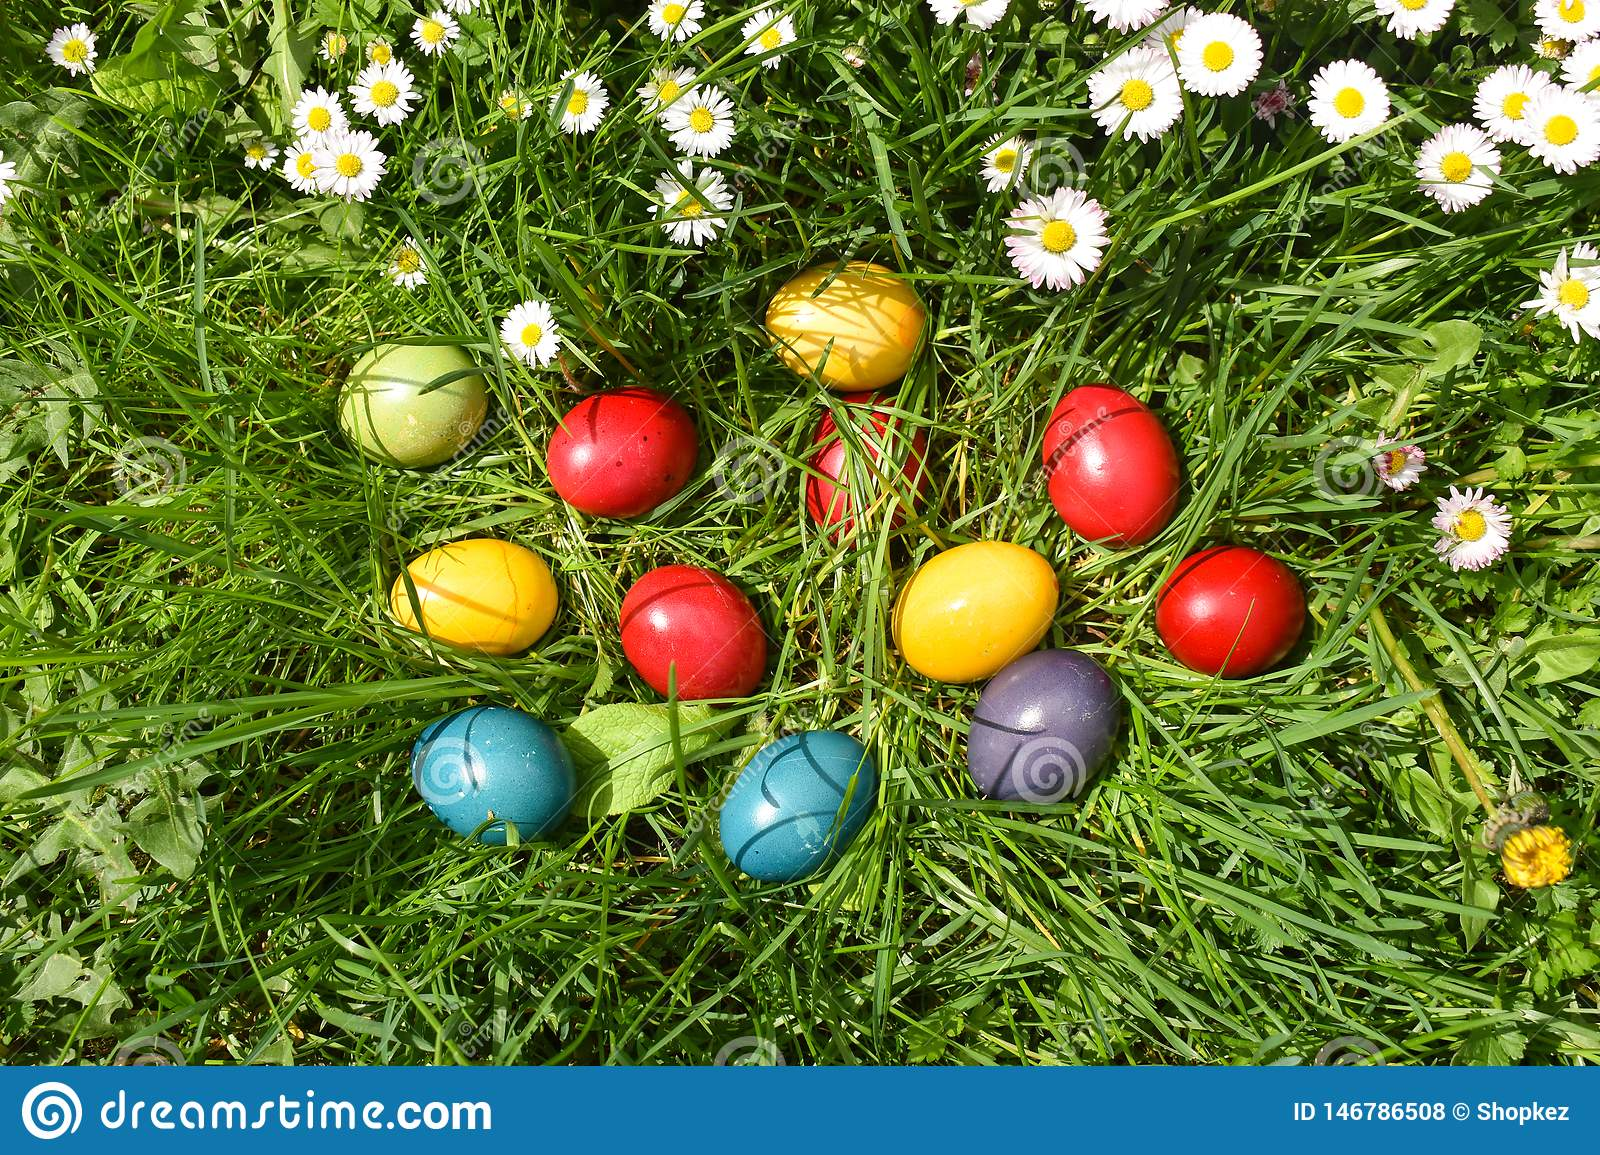 Colorful Easter eggs in the green grass with white spring flowers